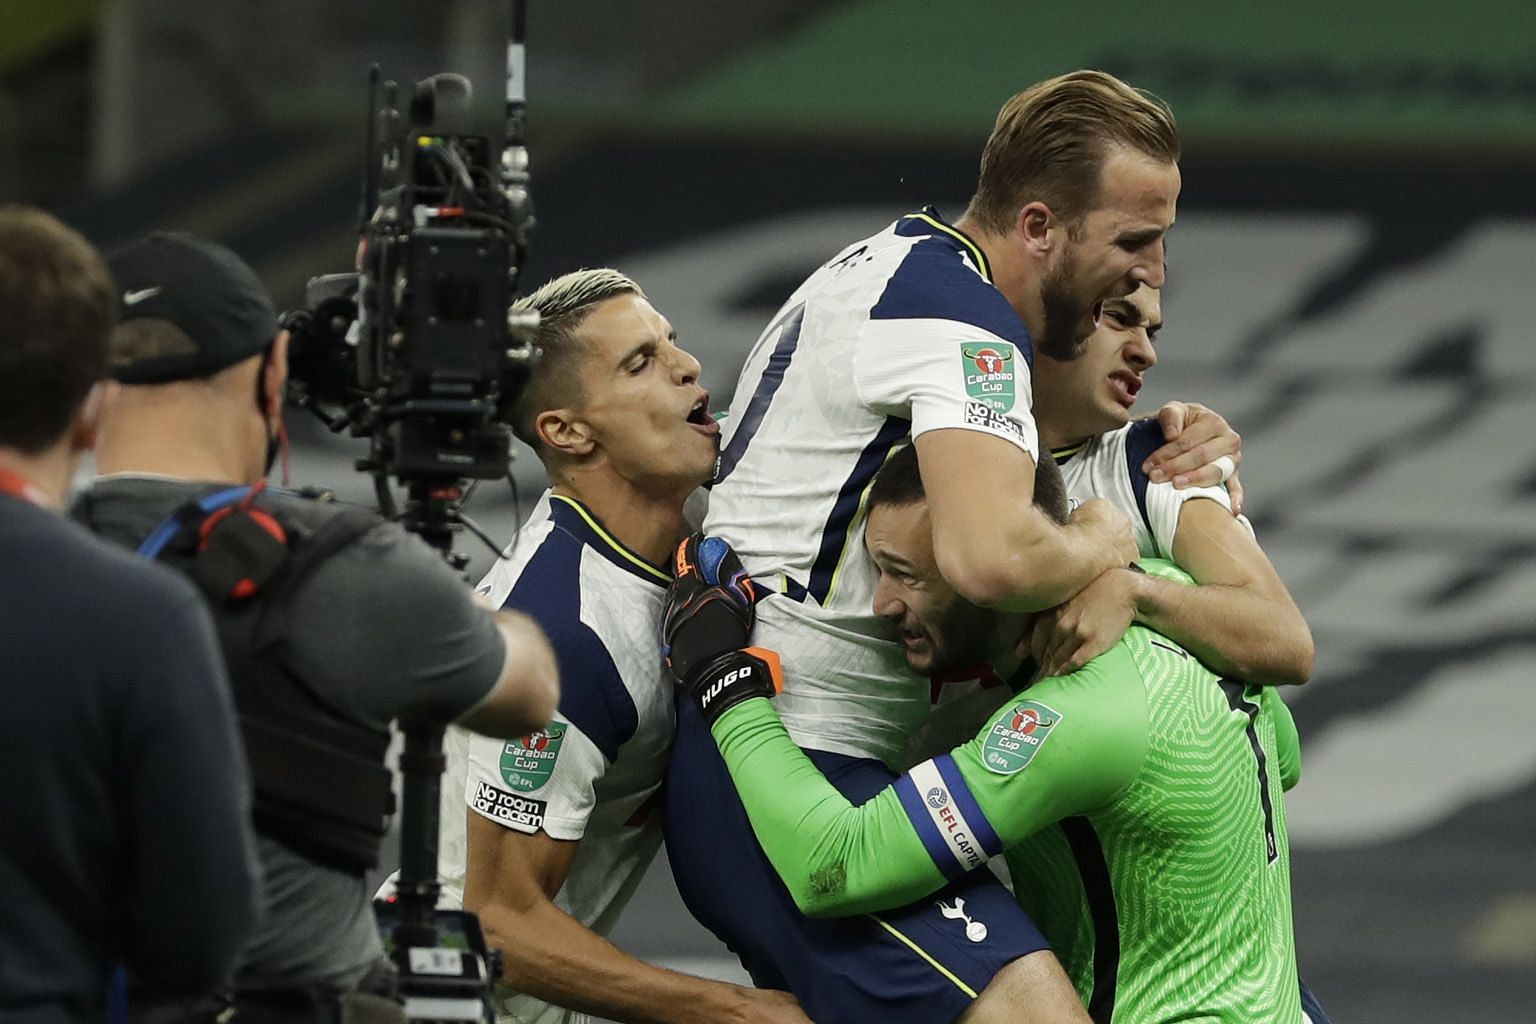 Top: Tottenham's Harry Kane and other players jumping on goalkeeper Hugo Lloris after their 5-4 penalty shoot-out win over Chelsea at home. Above: Mason Mount's penalty beating Lloris but clipping the post to put Spurs through to the League Cup quart